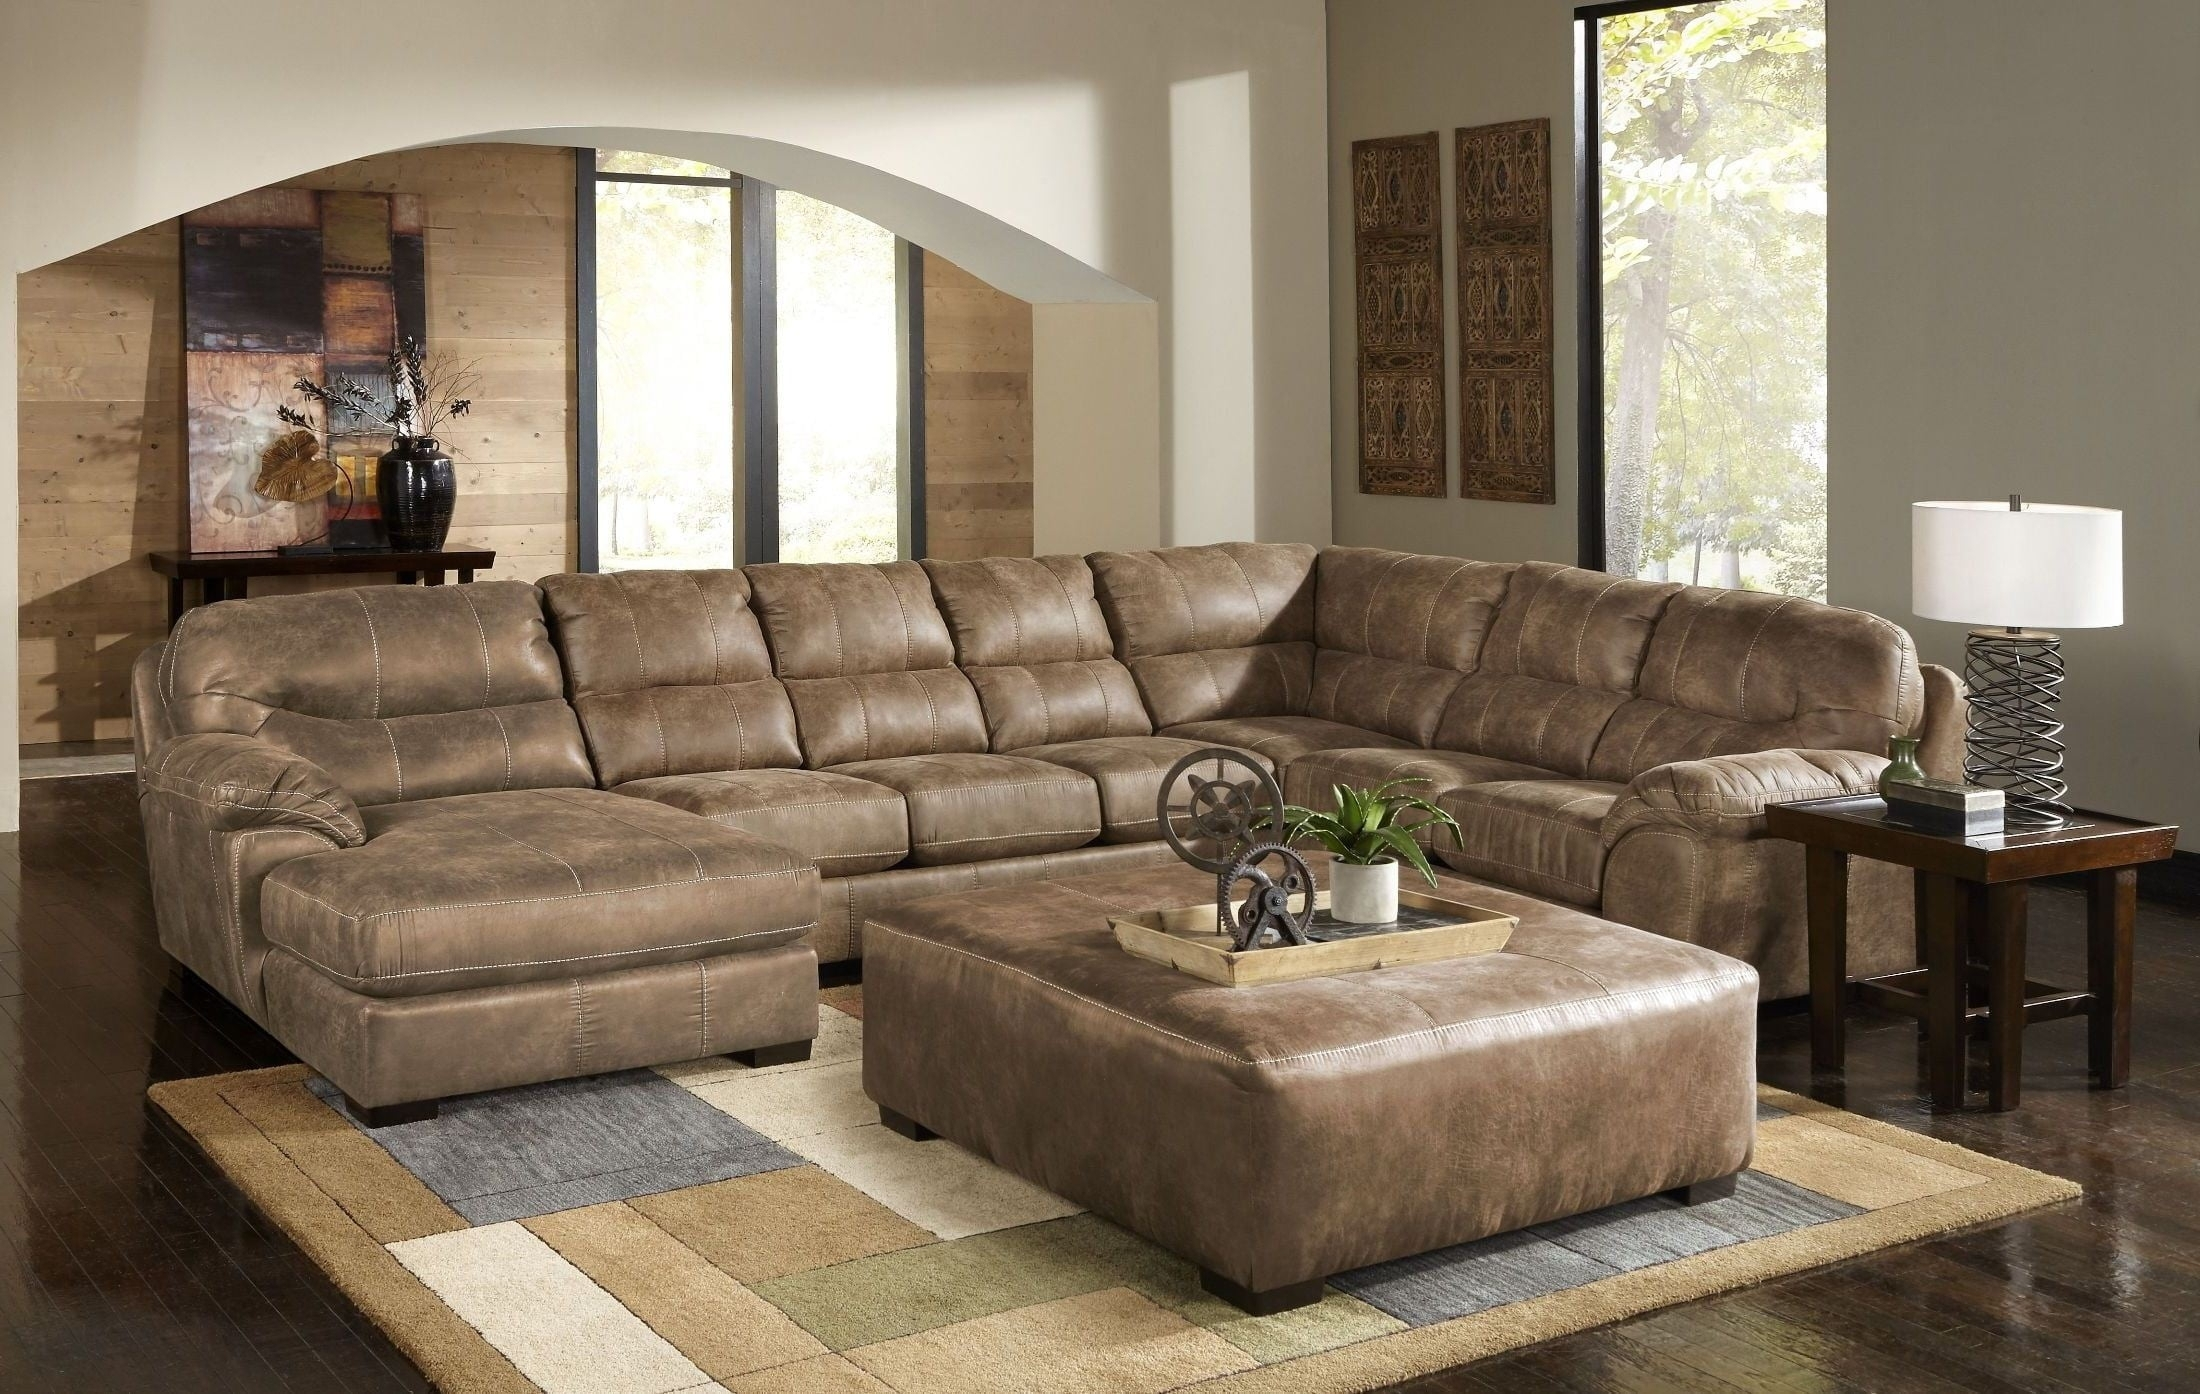 Grant Silt Laf Chaise Sectional, 4453-75-122749302749, Jackson for Avery 2 Piece Sectionals With Raf Armless Chaise